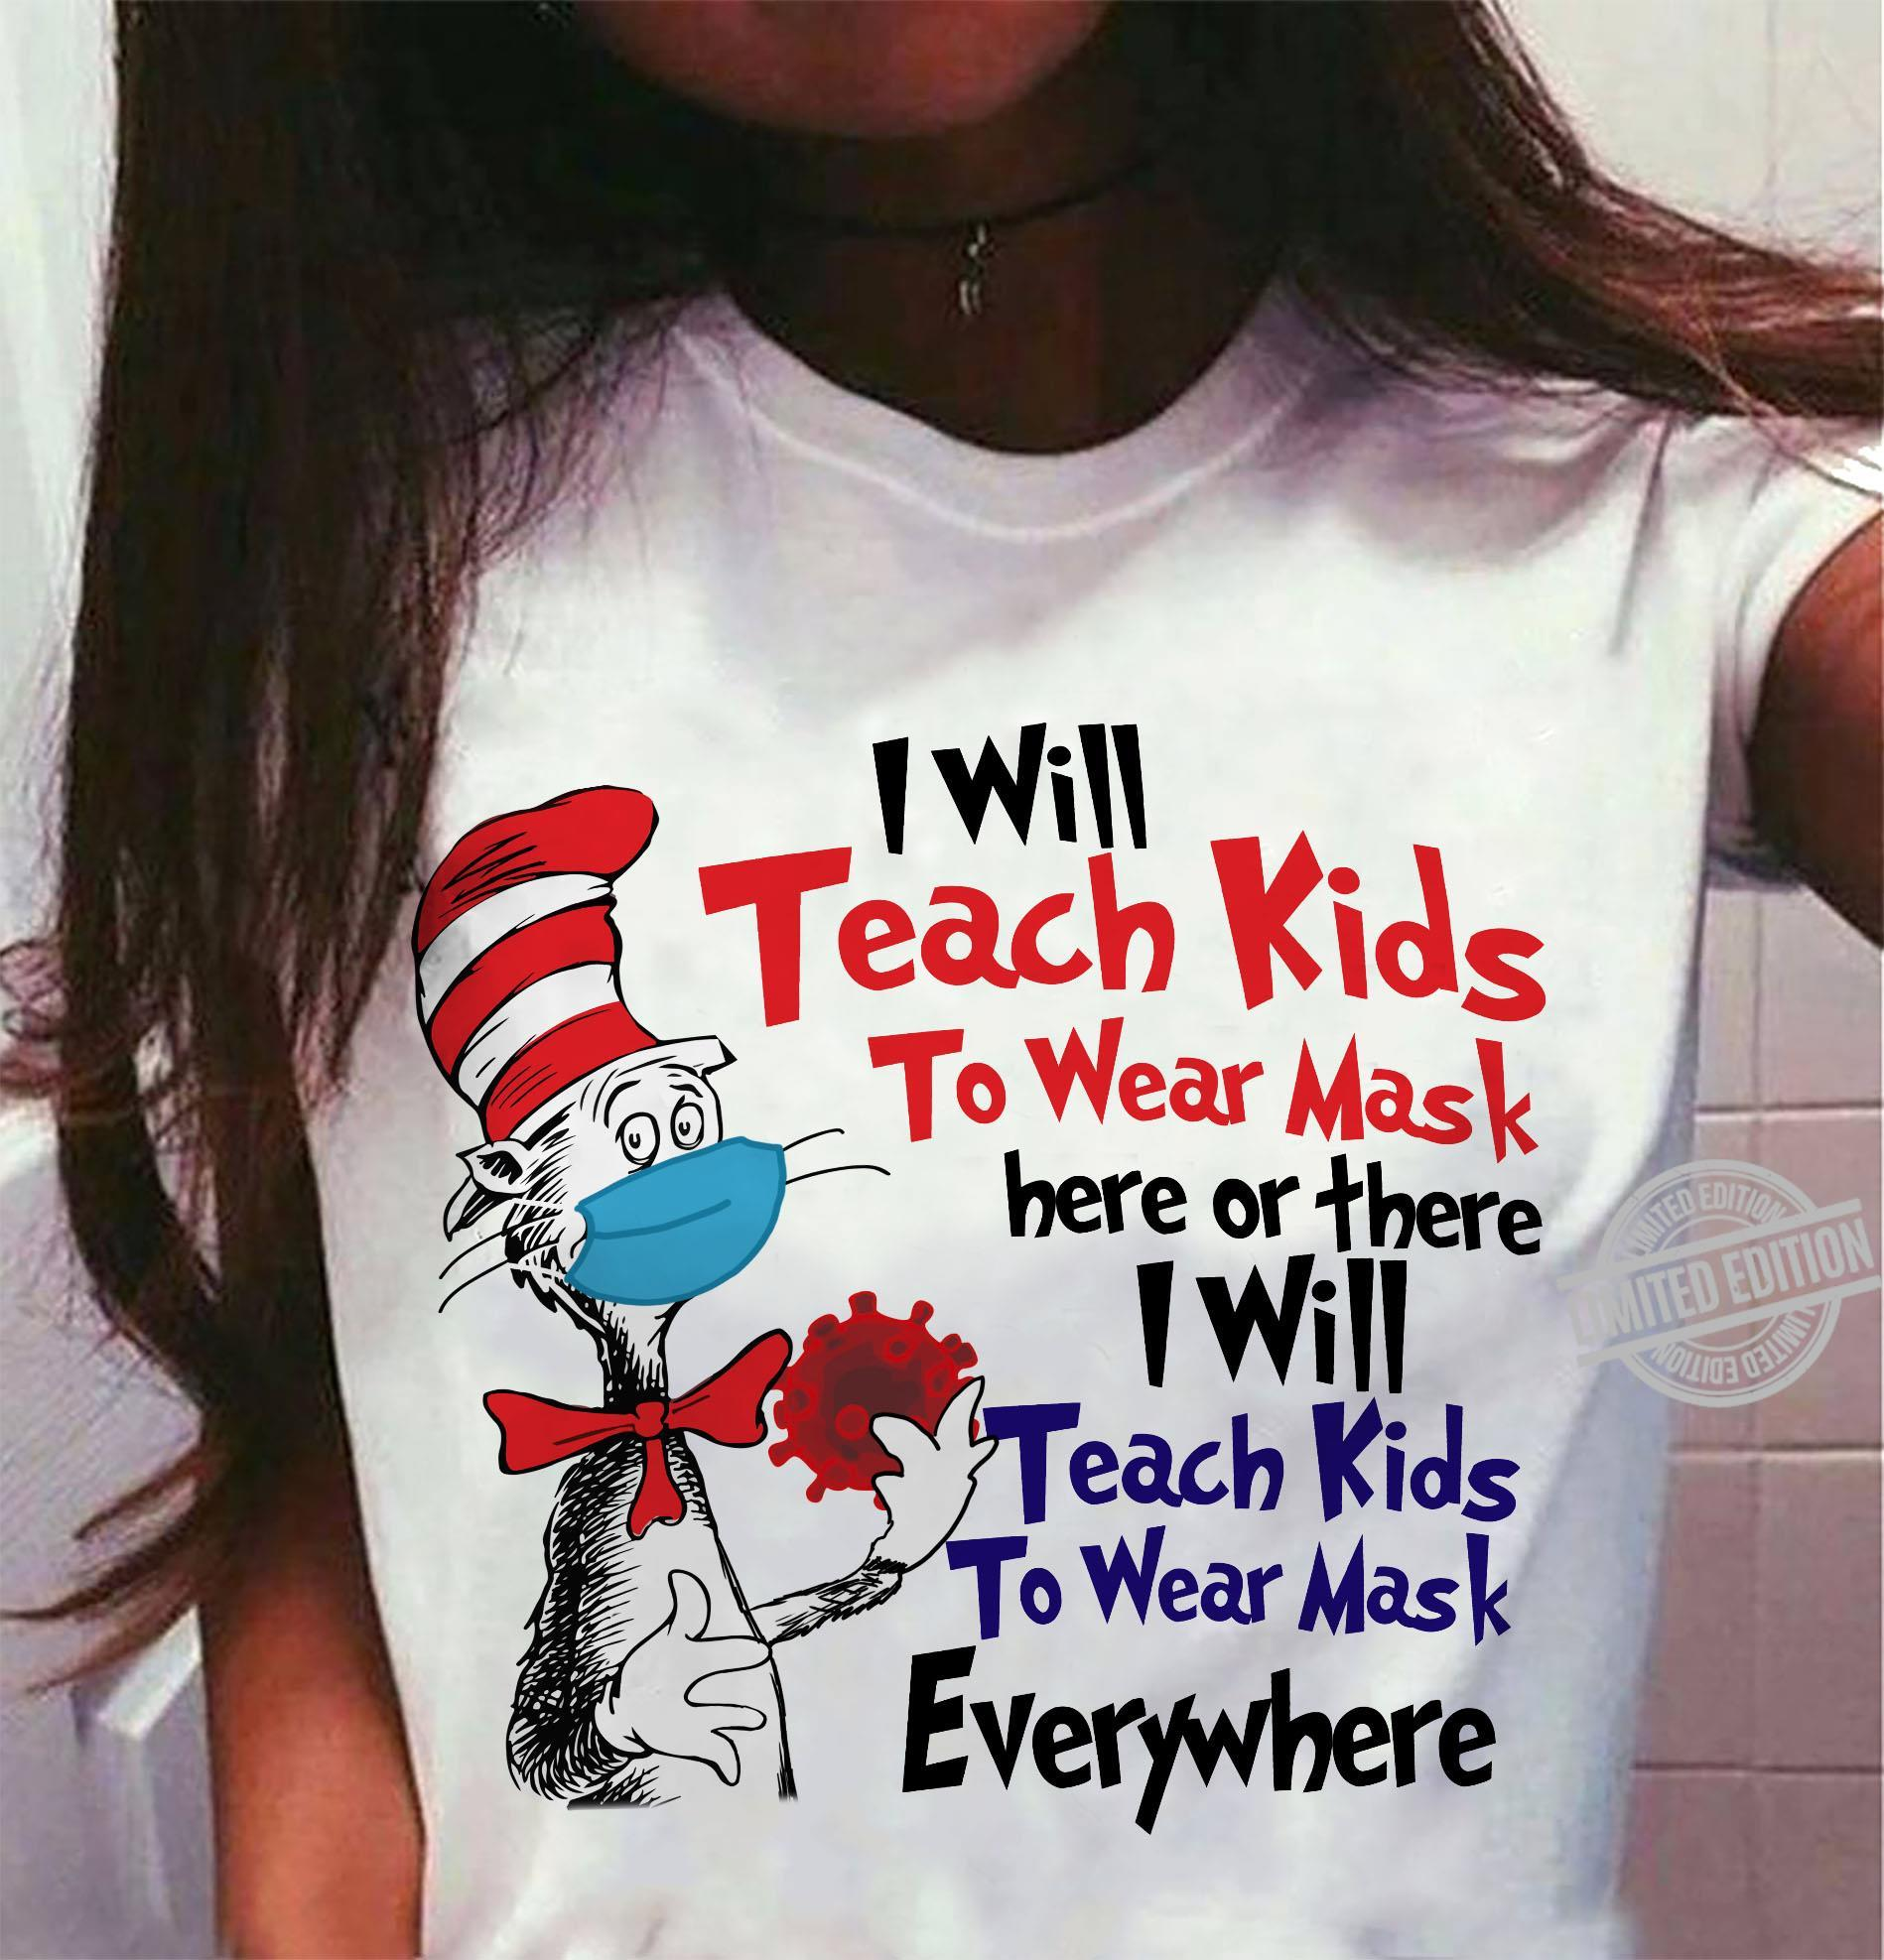 Dr Suess I Will Teach Kids To Wear Mask Here Or There I Will Teach Kids To Wear Mask Everywhere Shirt